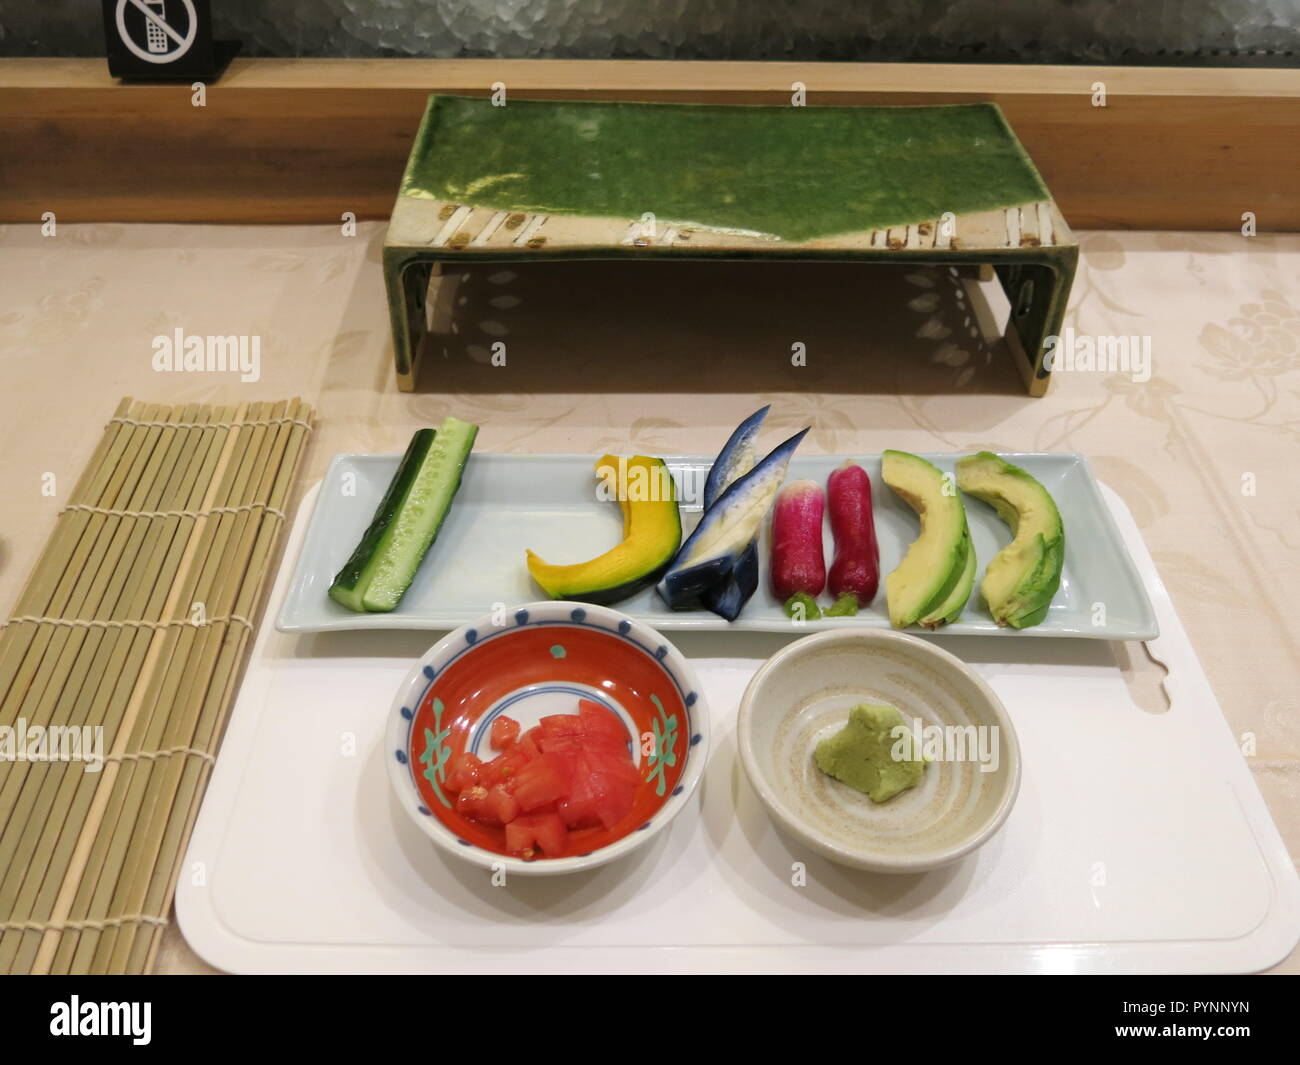 A dish of vegetable slices is prepared for the lunchtime sushi making at a Japanese restaurant. - Stock Image